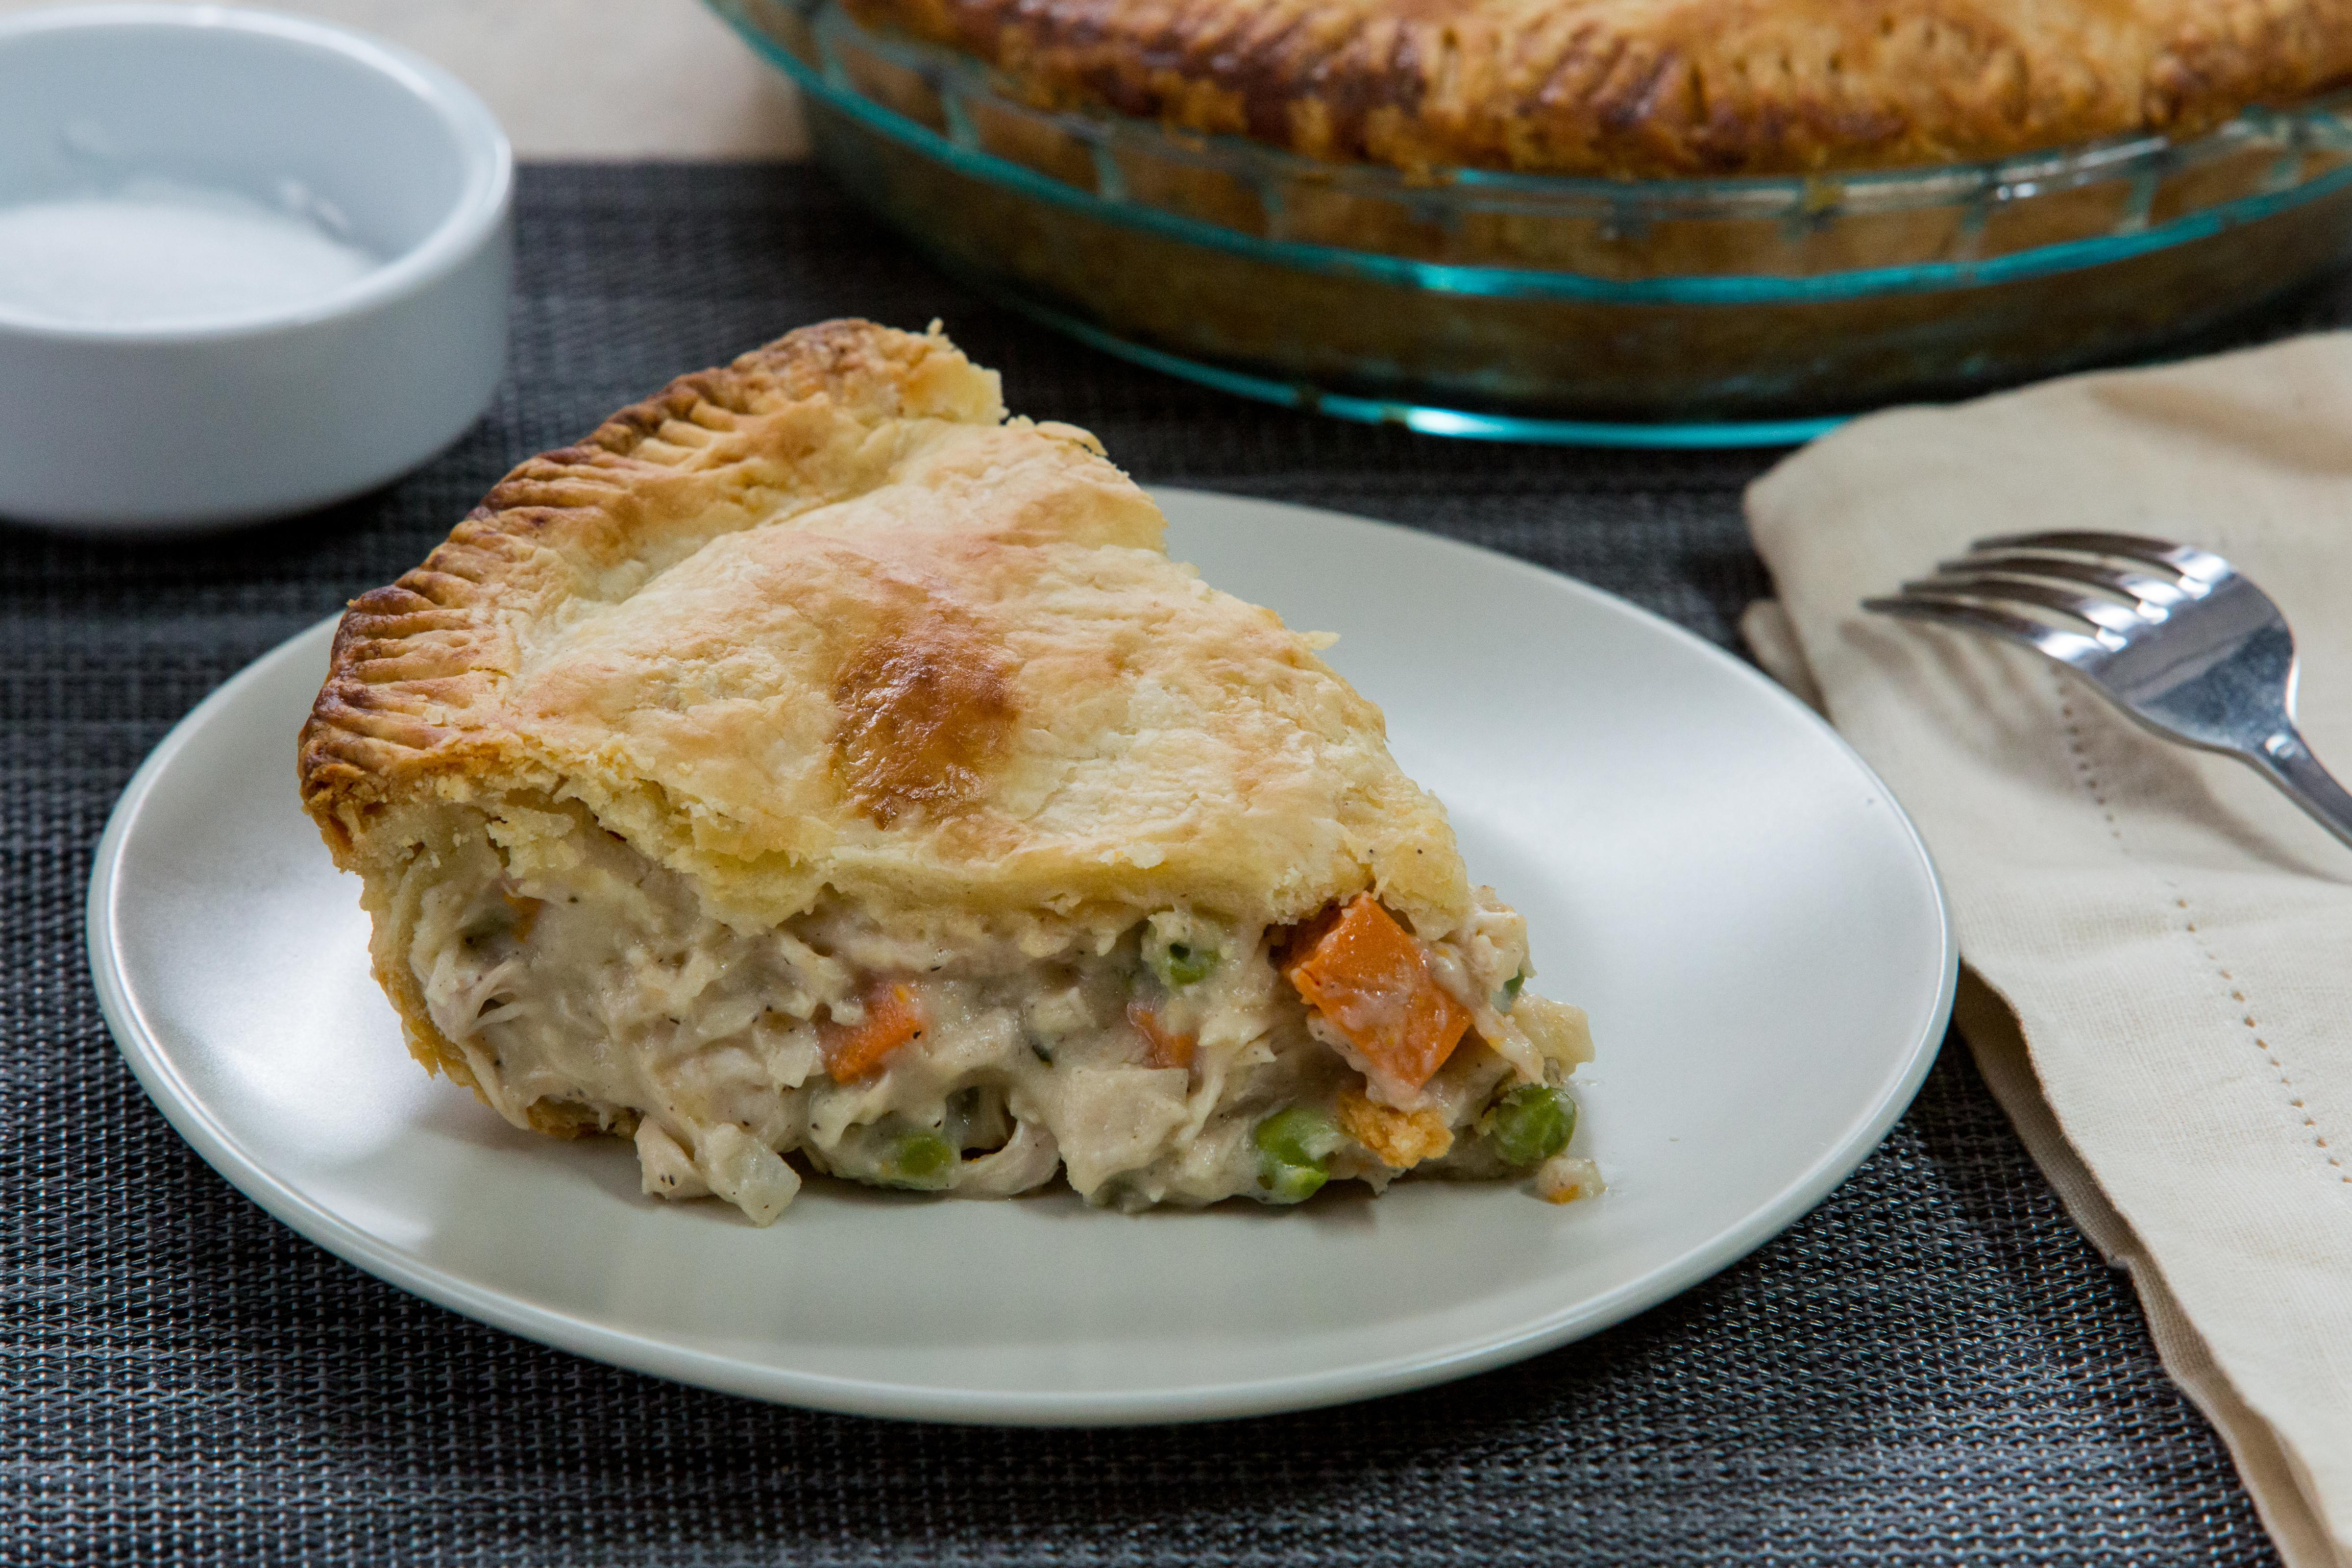 This easy chicken pot pie recipe is perfect for busy school nights